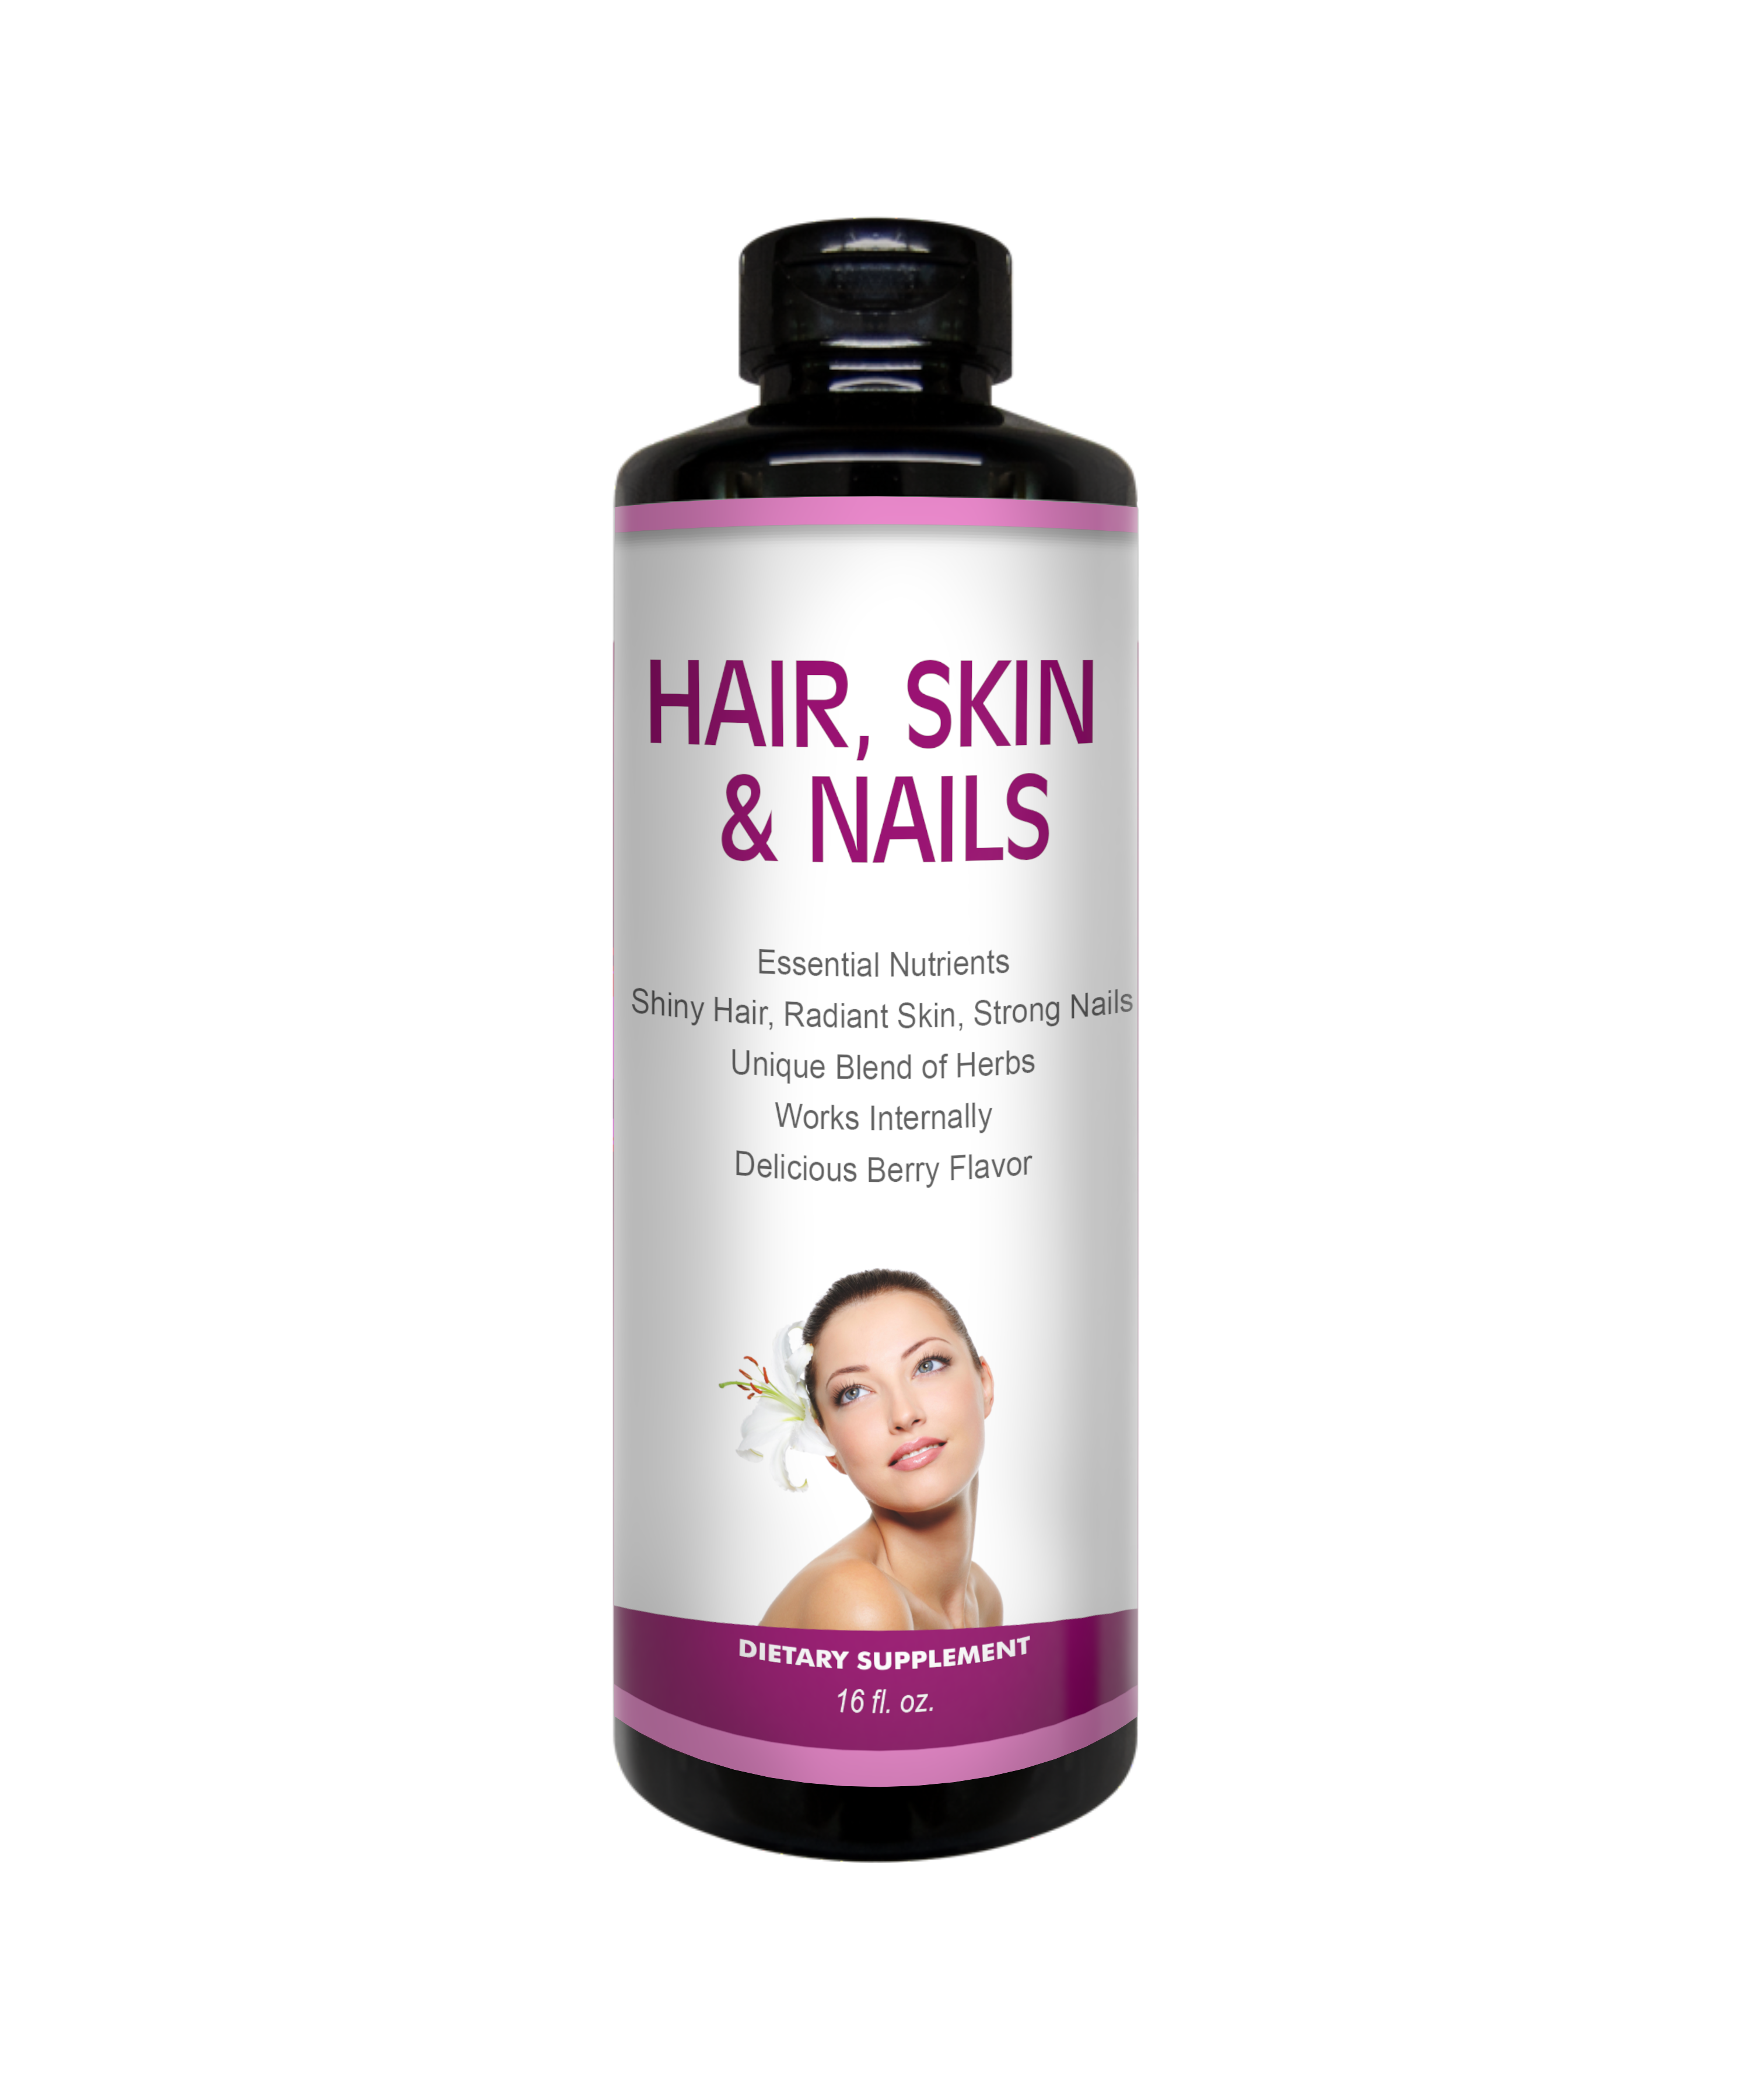 hair skin and nails bottle (front)